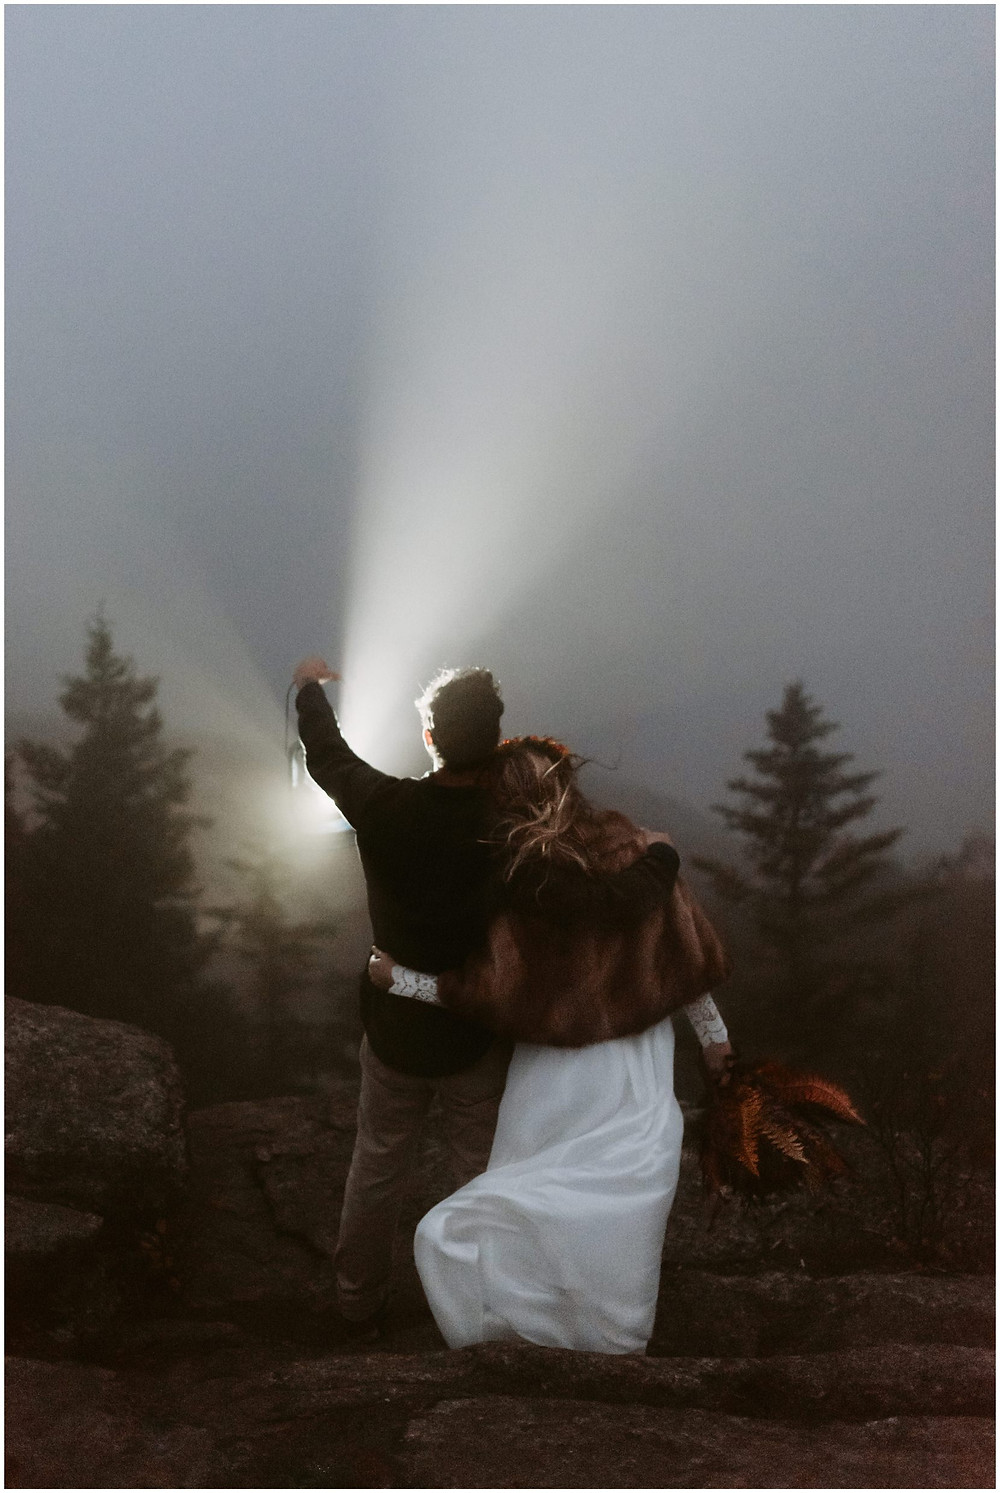 Hiking anniversary photos in Keene, NY by Mountainaire Gatherings